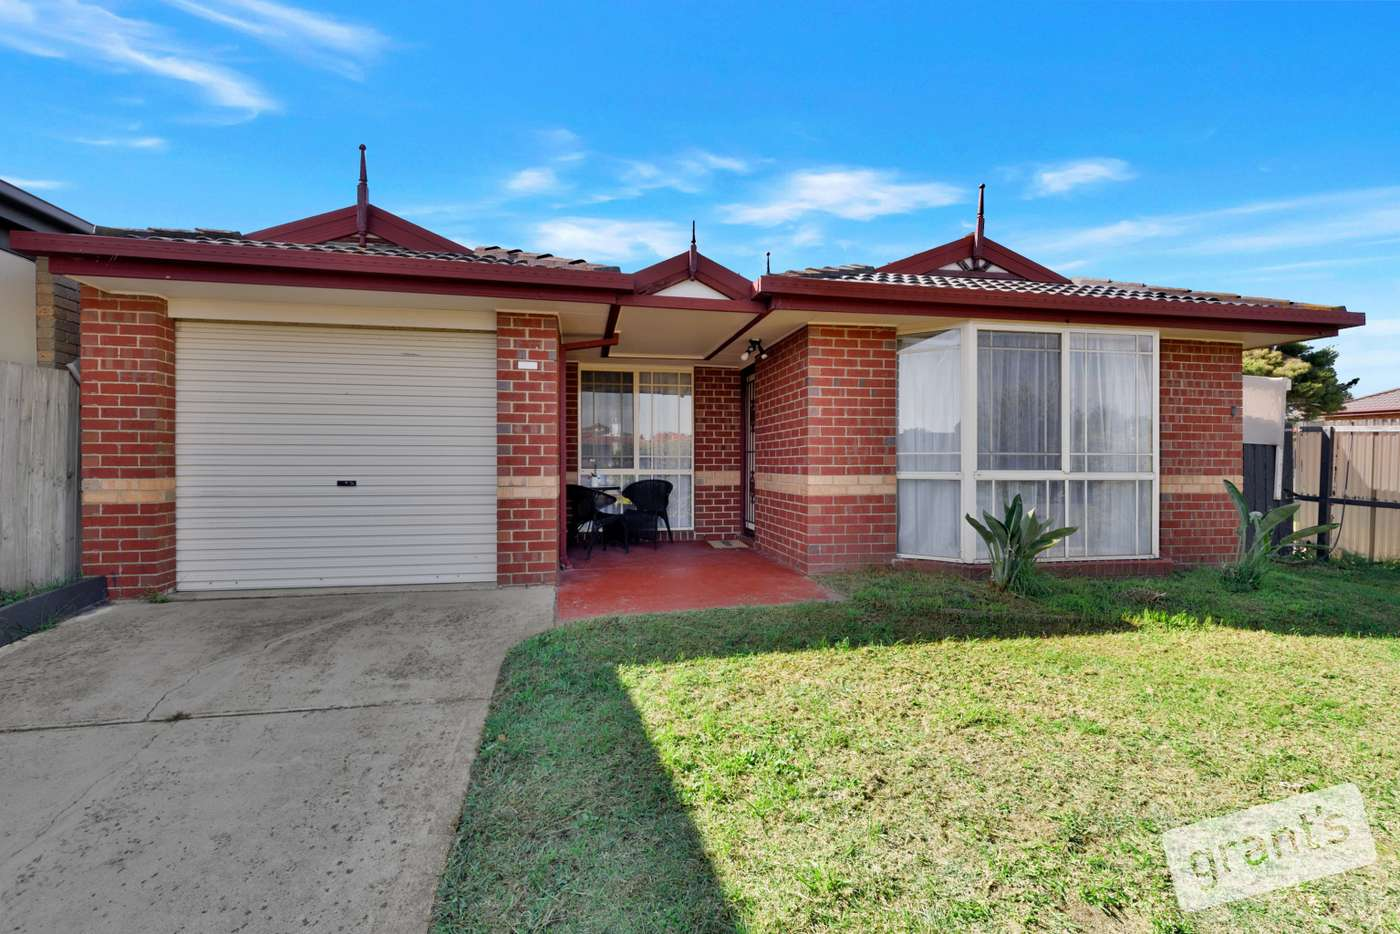 Main view of Homely house listing, 4 Riddleston Court, Narre Warren South VIC 3805